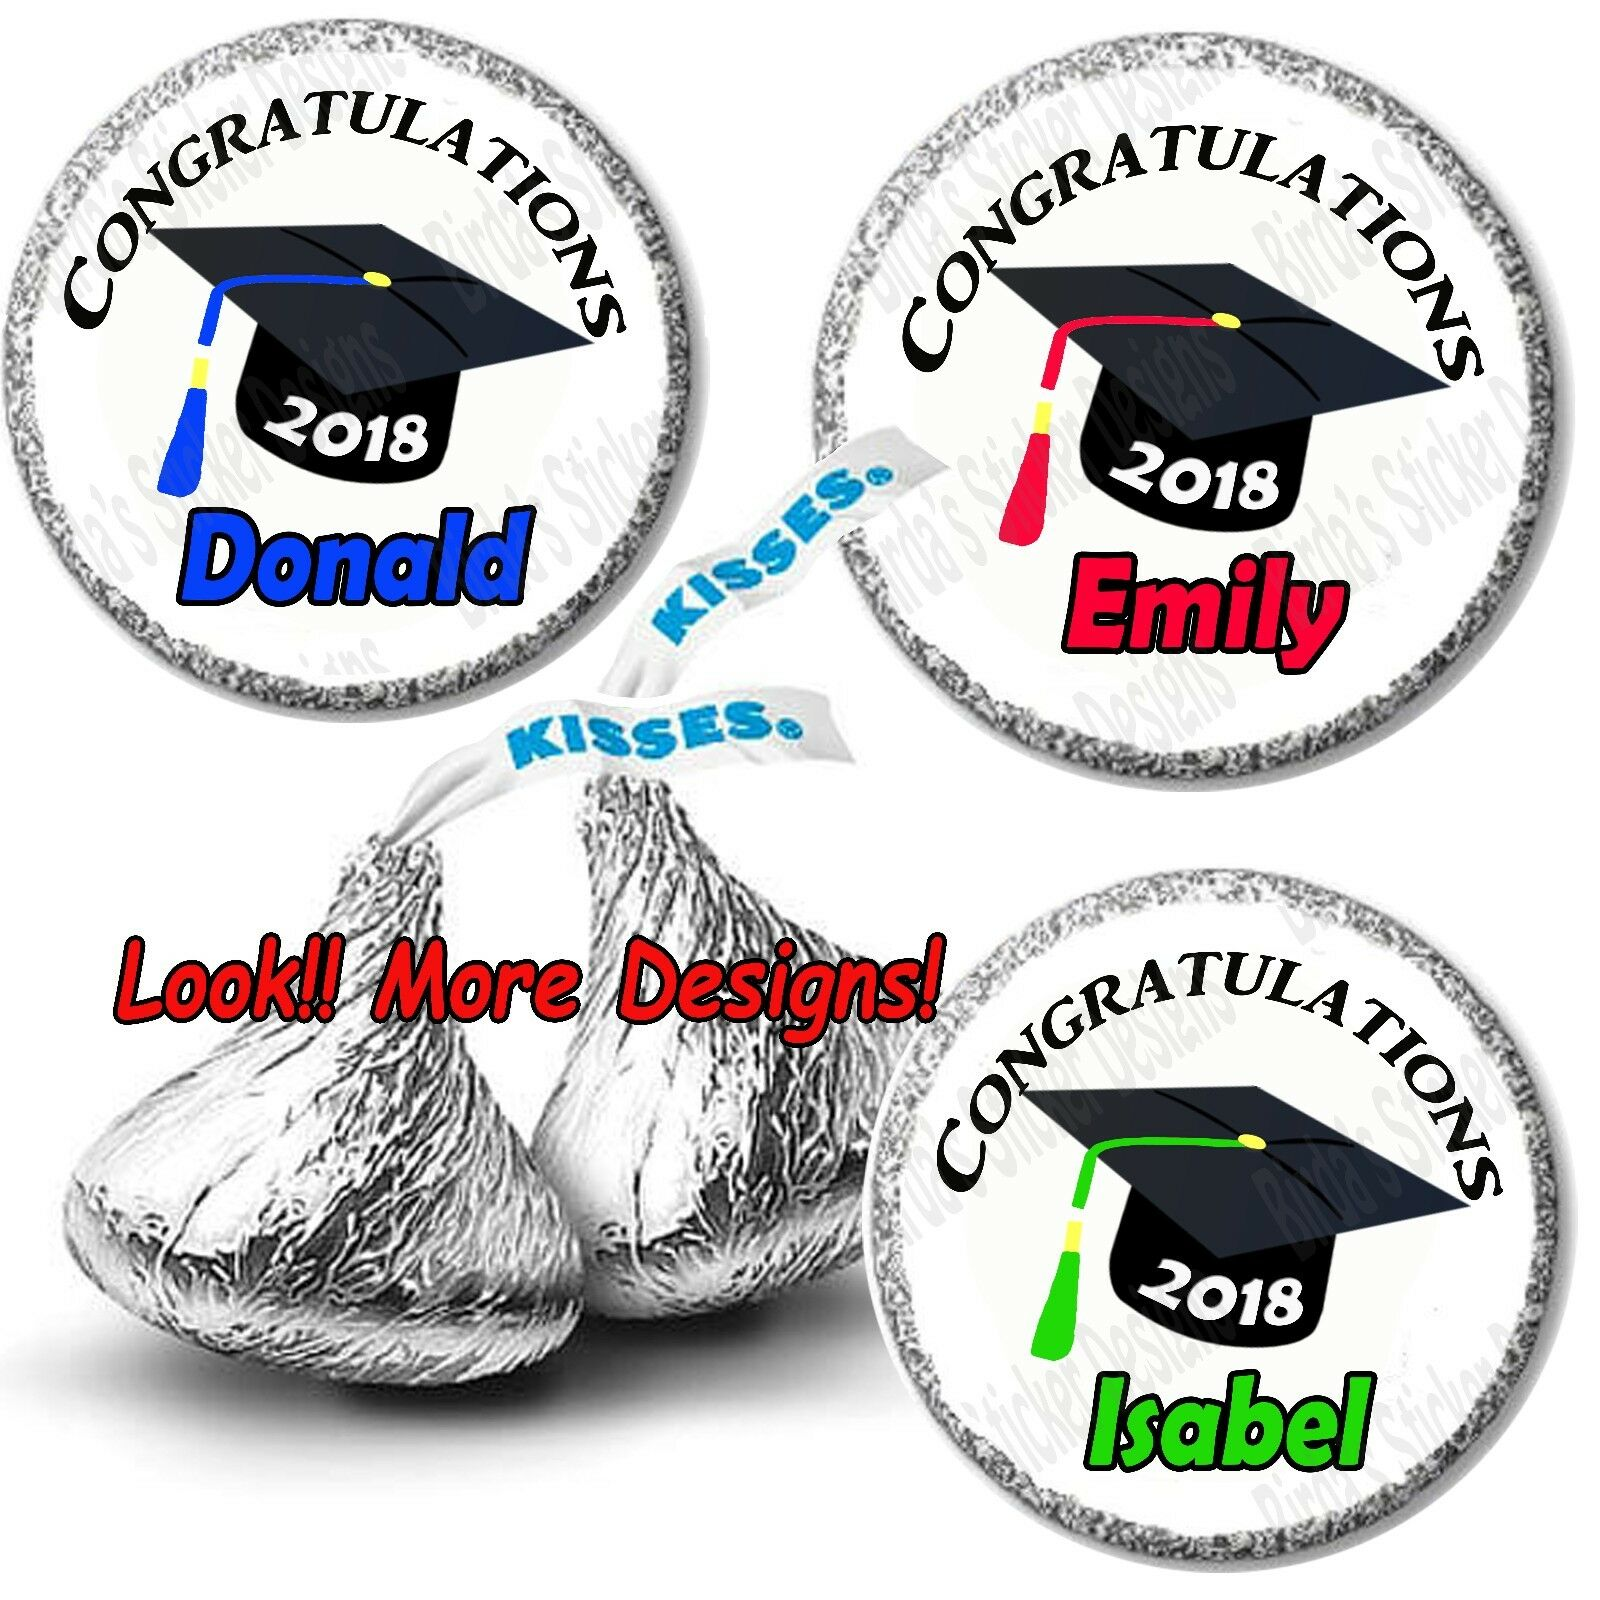 108 Hershey Kiss Stickers Labels Congratulations 2019 Graduation  Personalized.